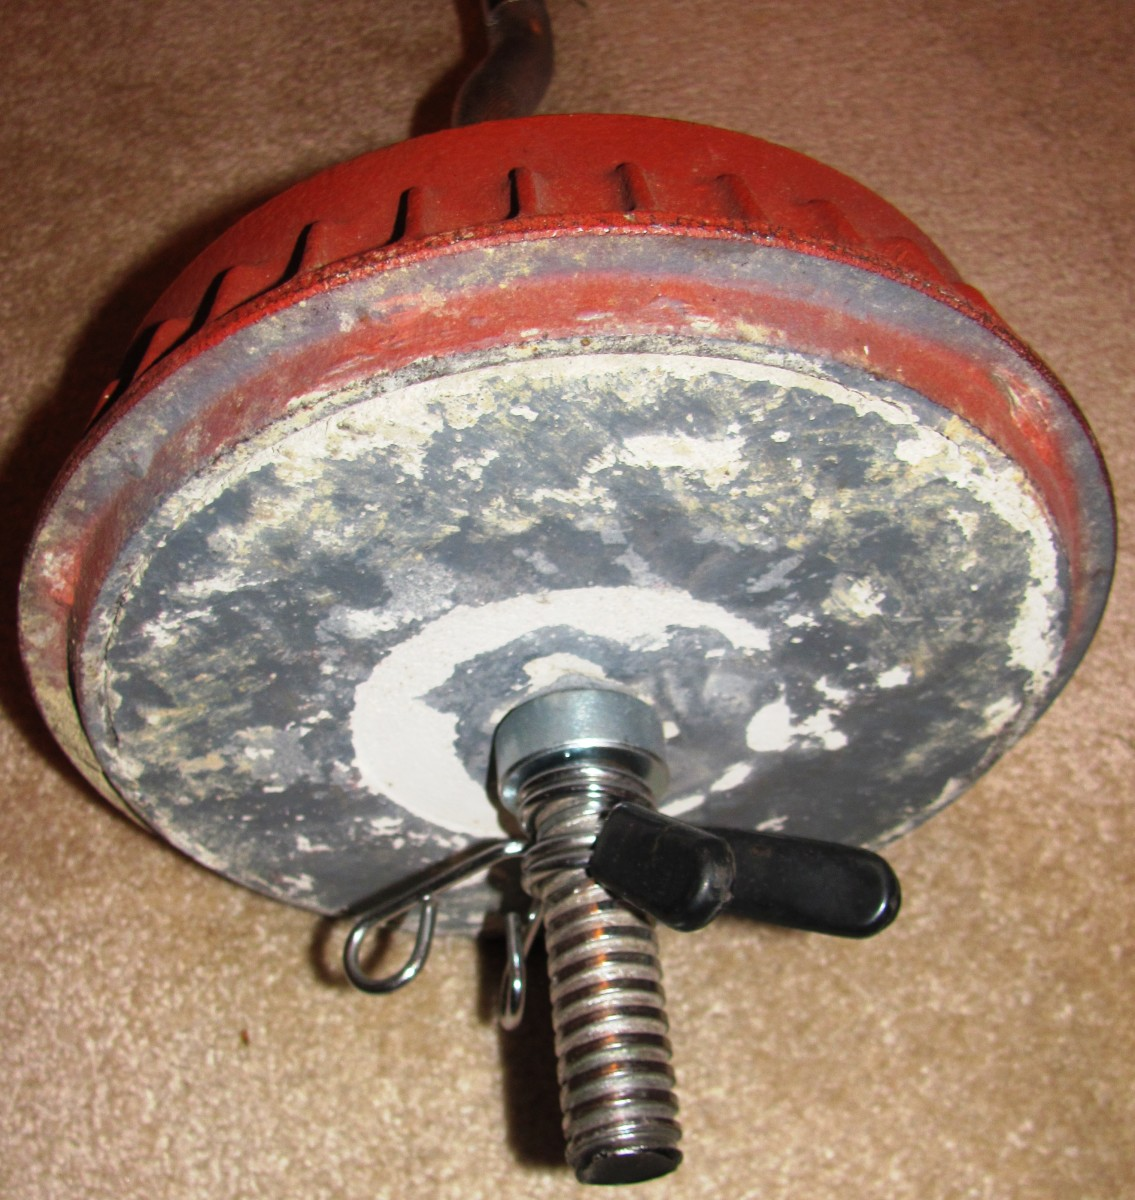 Homemade weights have a frugal flair.  Thanks to spray paint, they can also be fashionable.